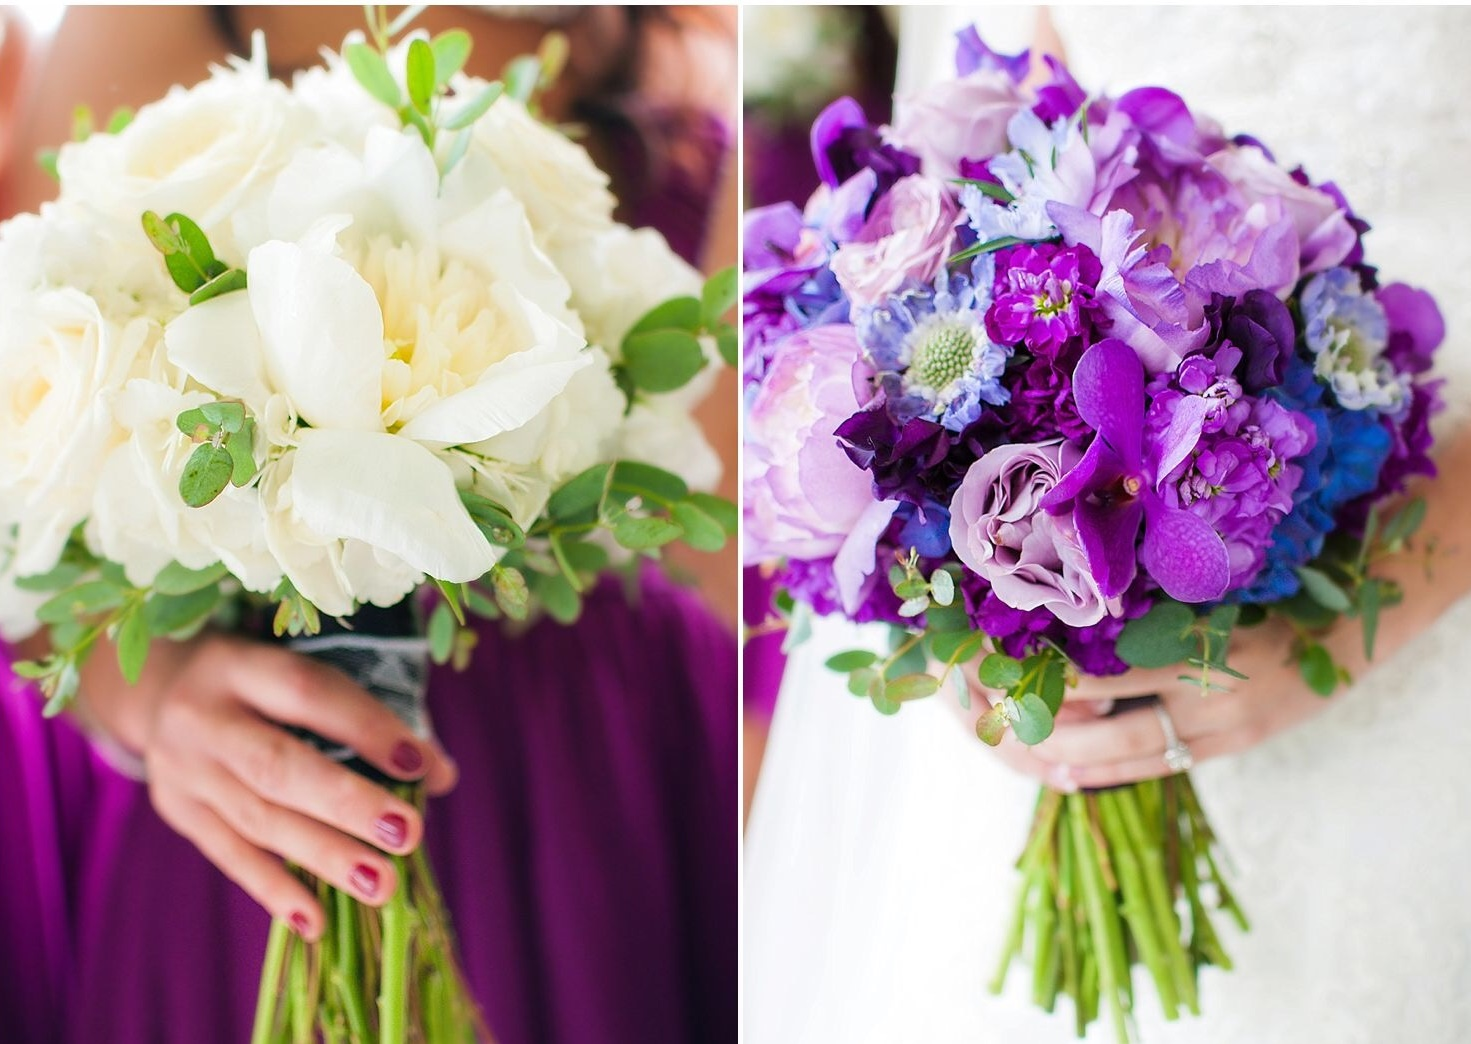 Lush peonies & scabiosa looking stunning & in season for a late May wedding. Photo by  M.Rinaye Photography .